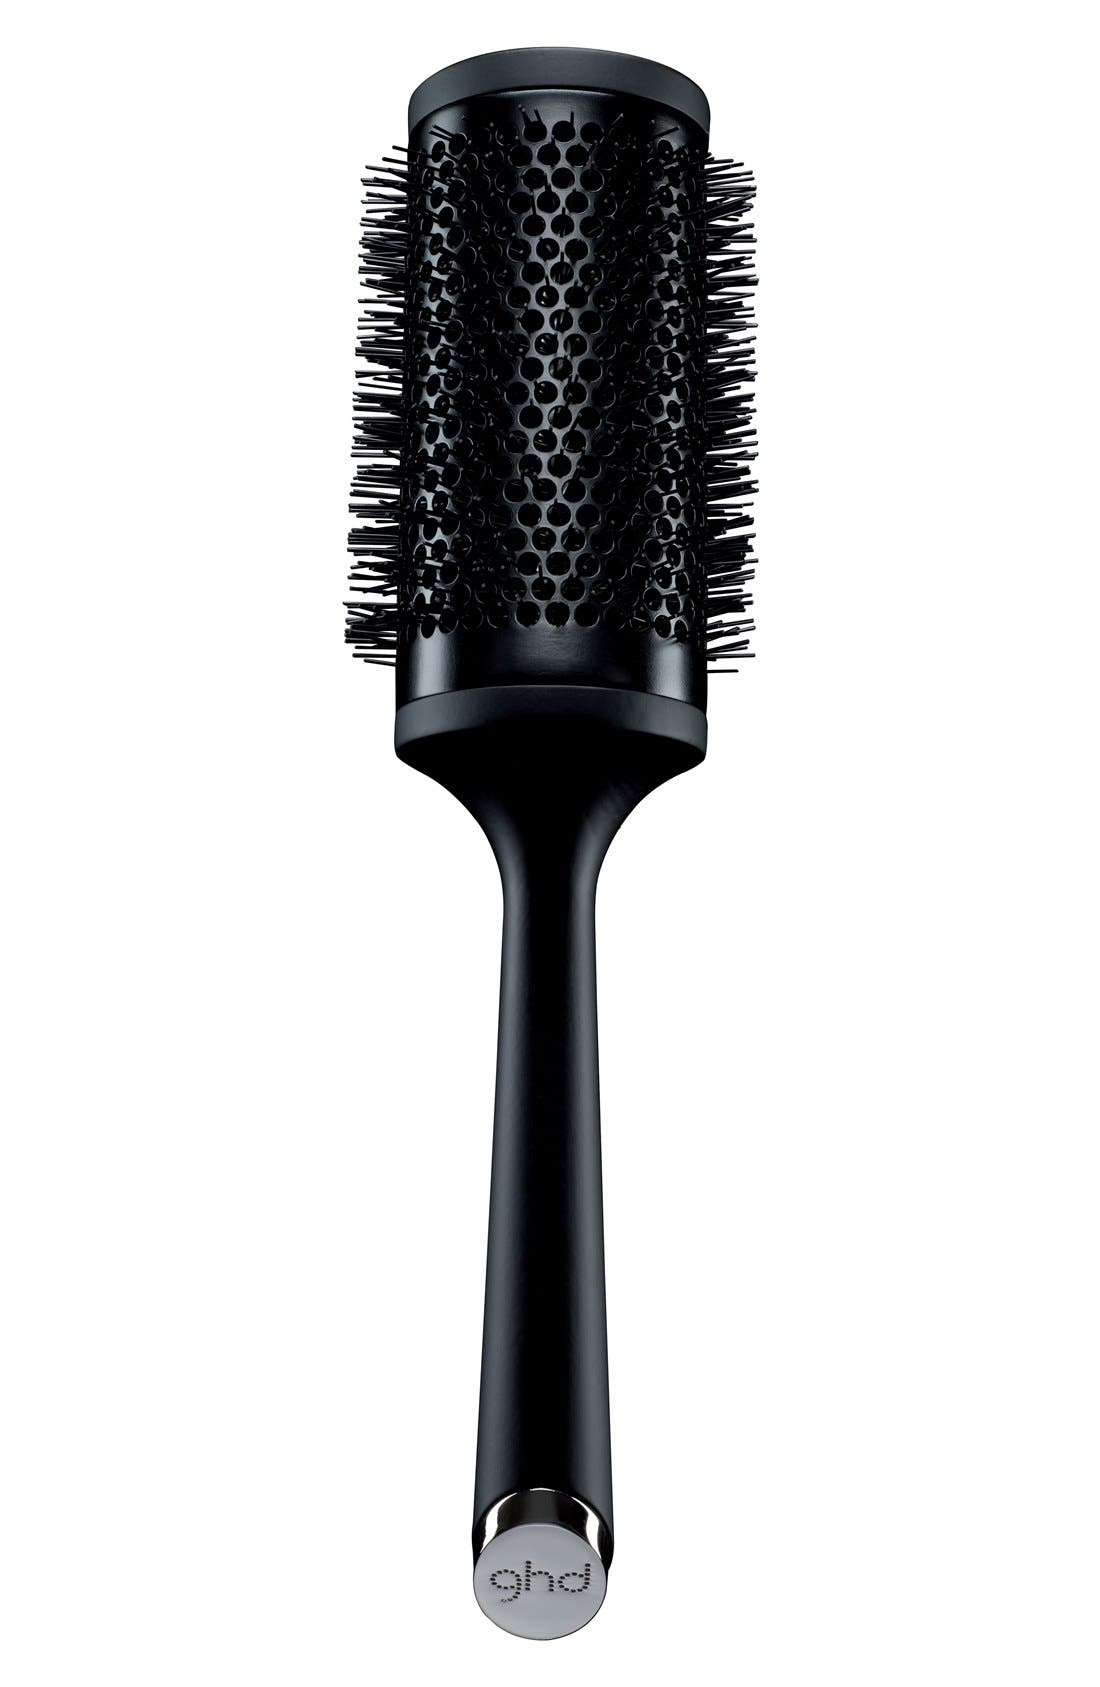 Main Image - ghd Ceramic Vented Radial Brush Size 4 (55mm)